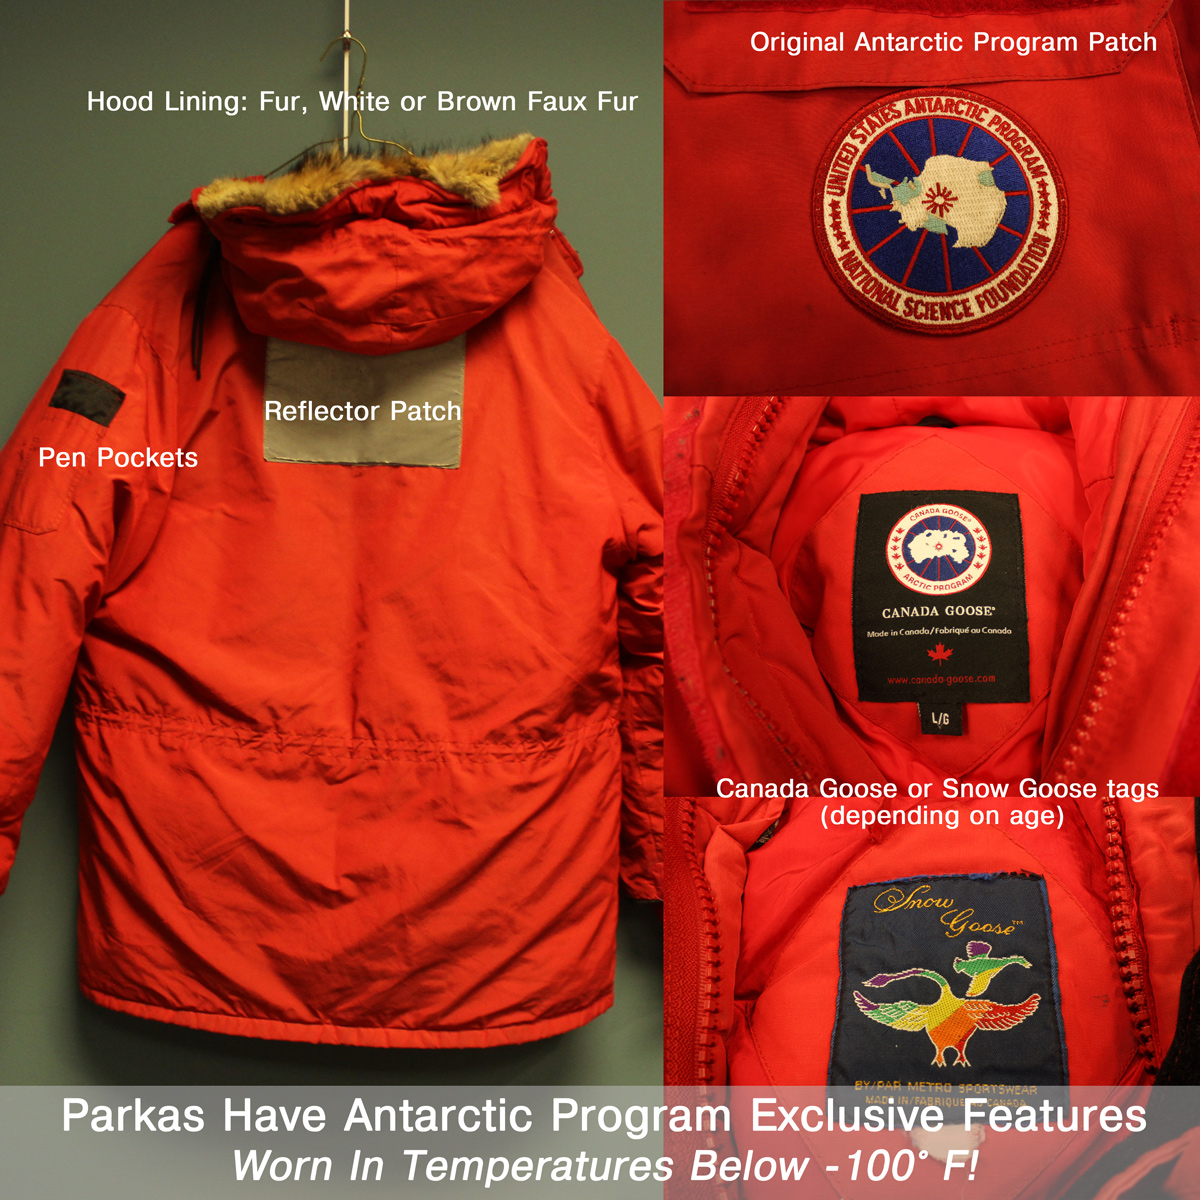 Quot Big Red Quot Canada Goose Down Parka Worn In Antarctica